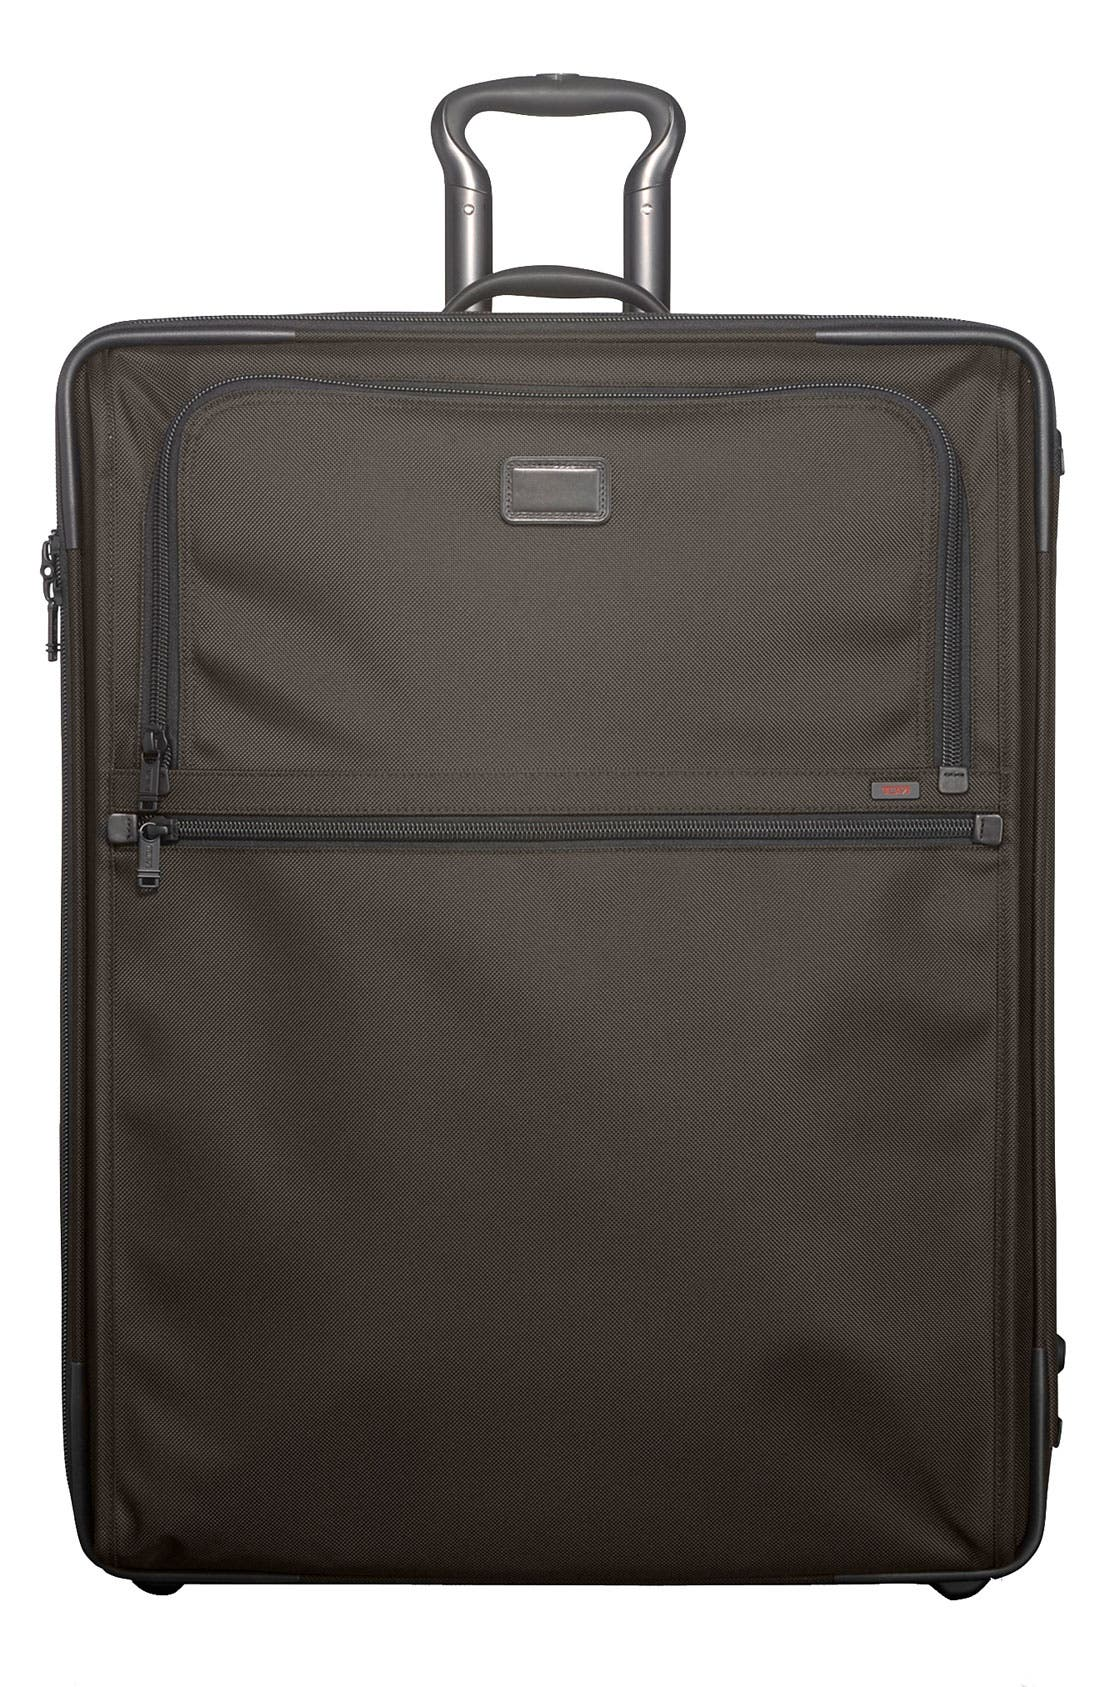 Alternate Image 1 Selected - Tumi 'Alpha' Wheeled Expandable Extended Trip Bag